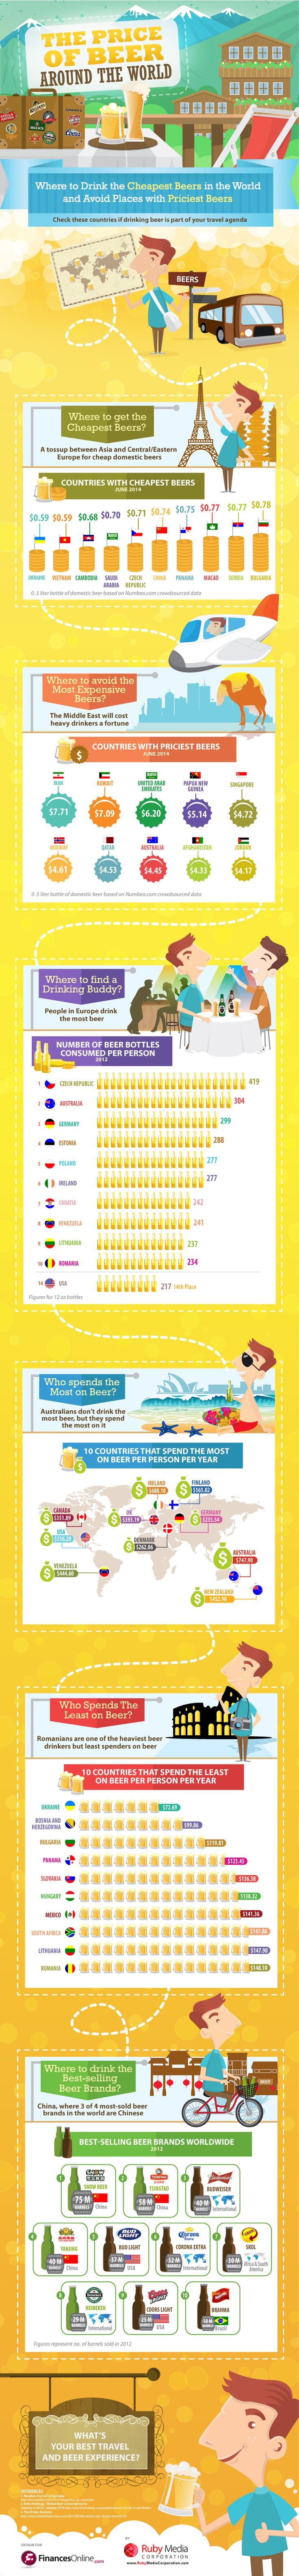 Price of Beer Infographic to help you plan your next vacation. #TTOT #cruisechat #twchats